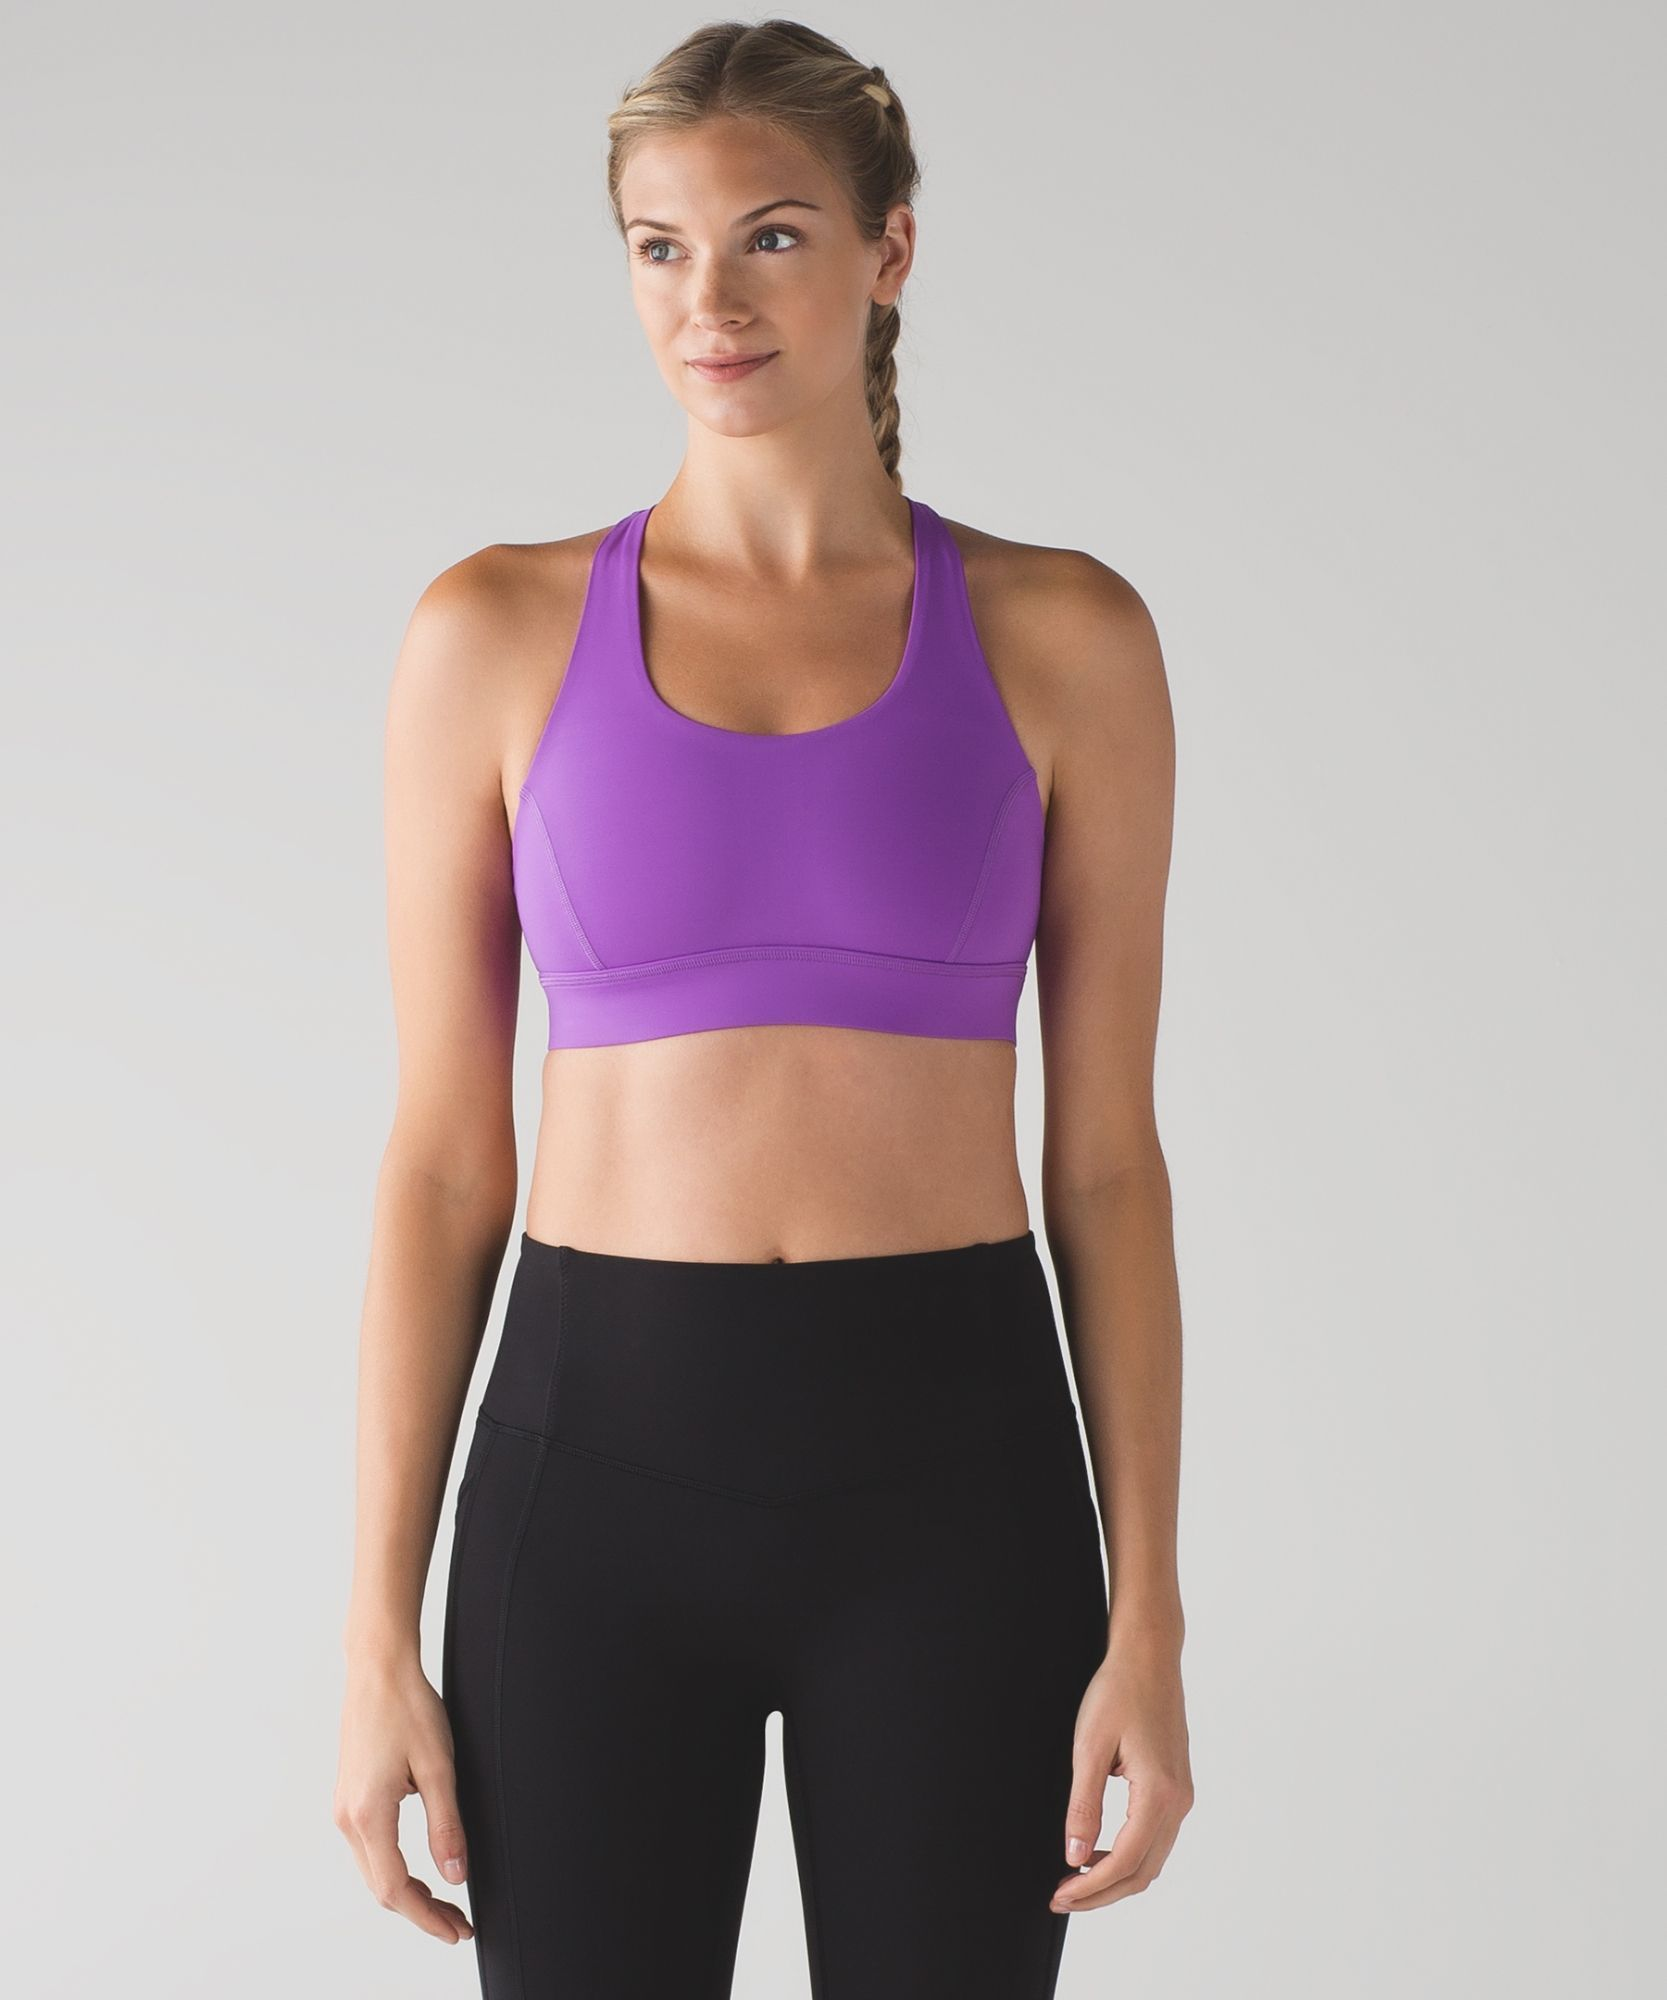 Break a sweat—this bra is designed for highimpact